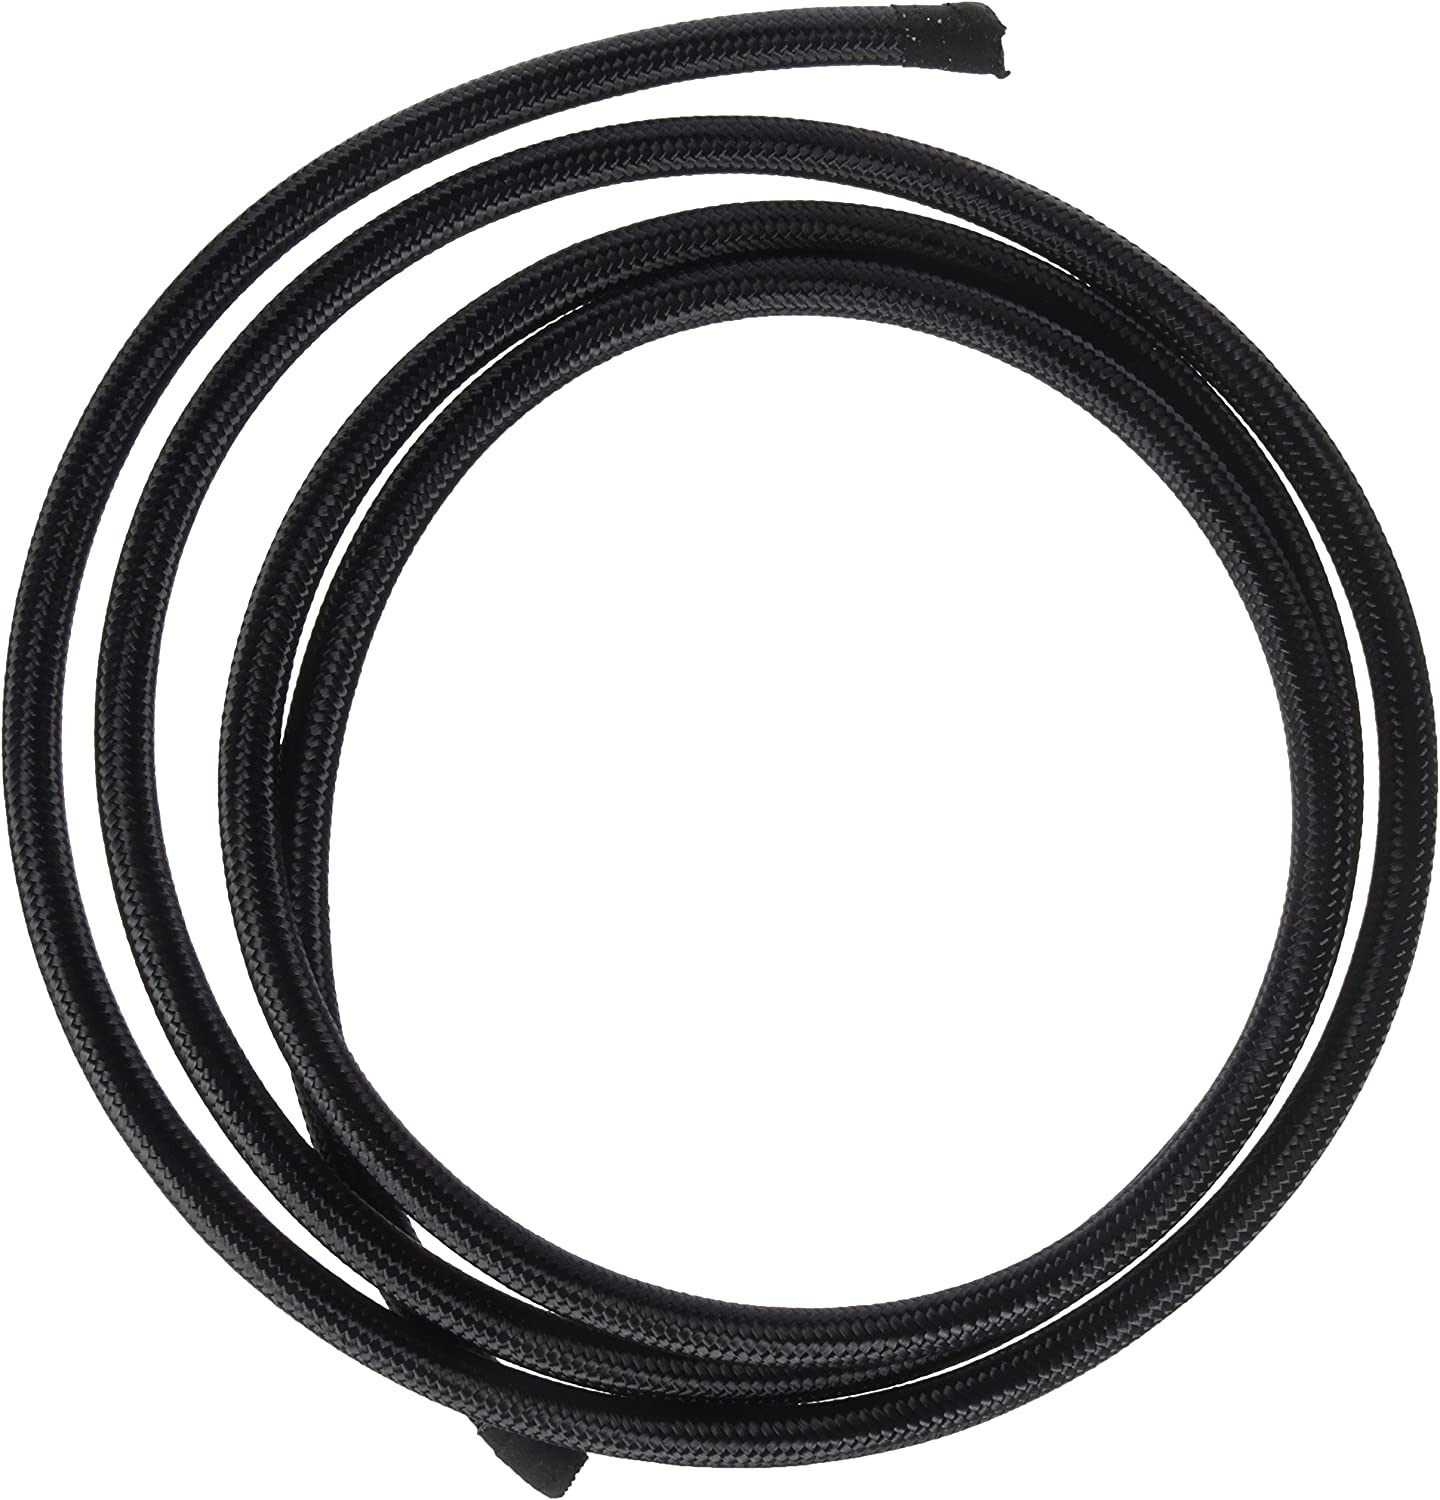 Vibrant Performance 16316 Flex Hose for Push-On Style Fittings -6AN 0.38 ID - 10 Foot Roll